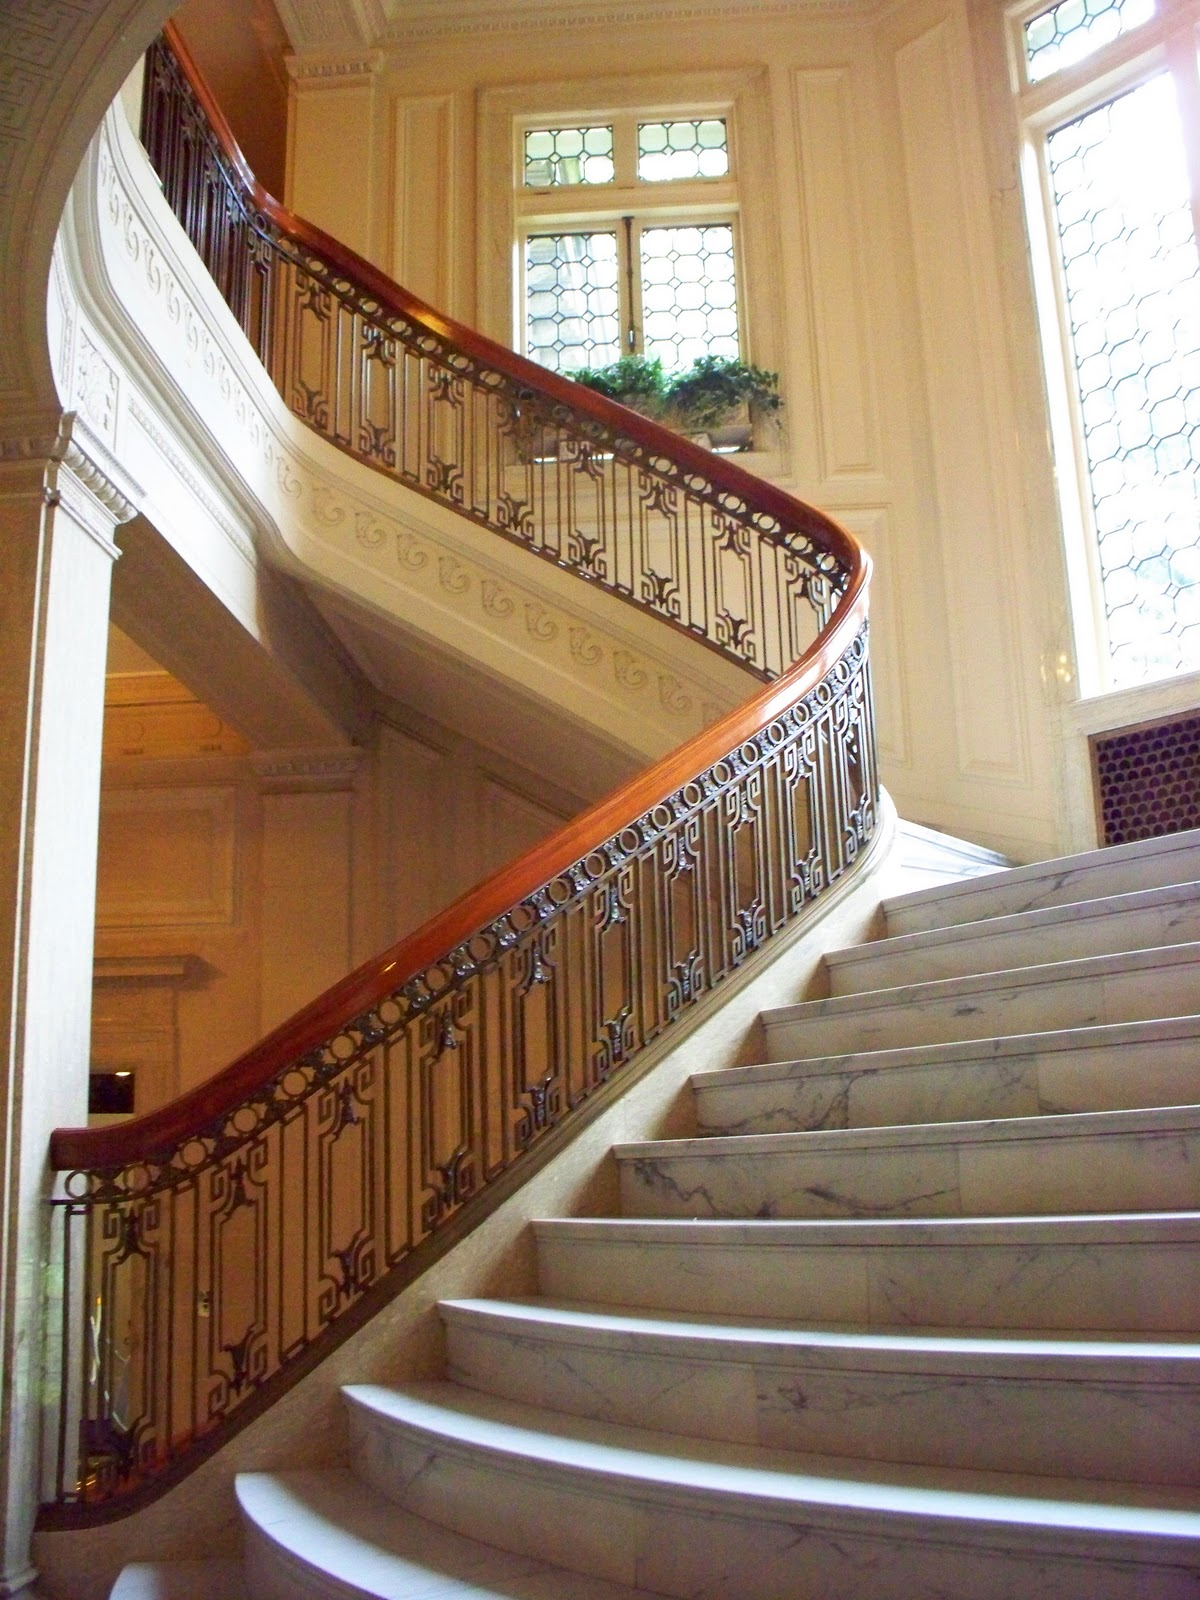 The grand staircase to the second floor